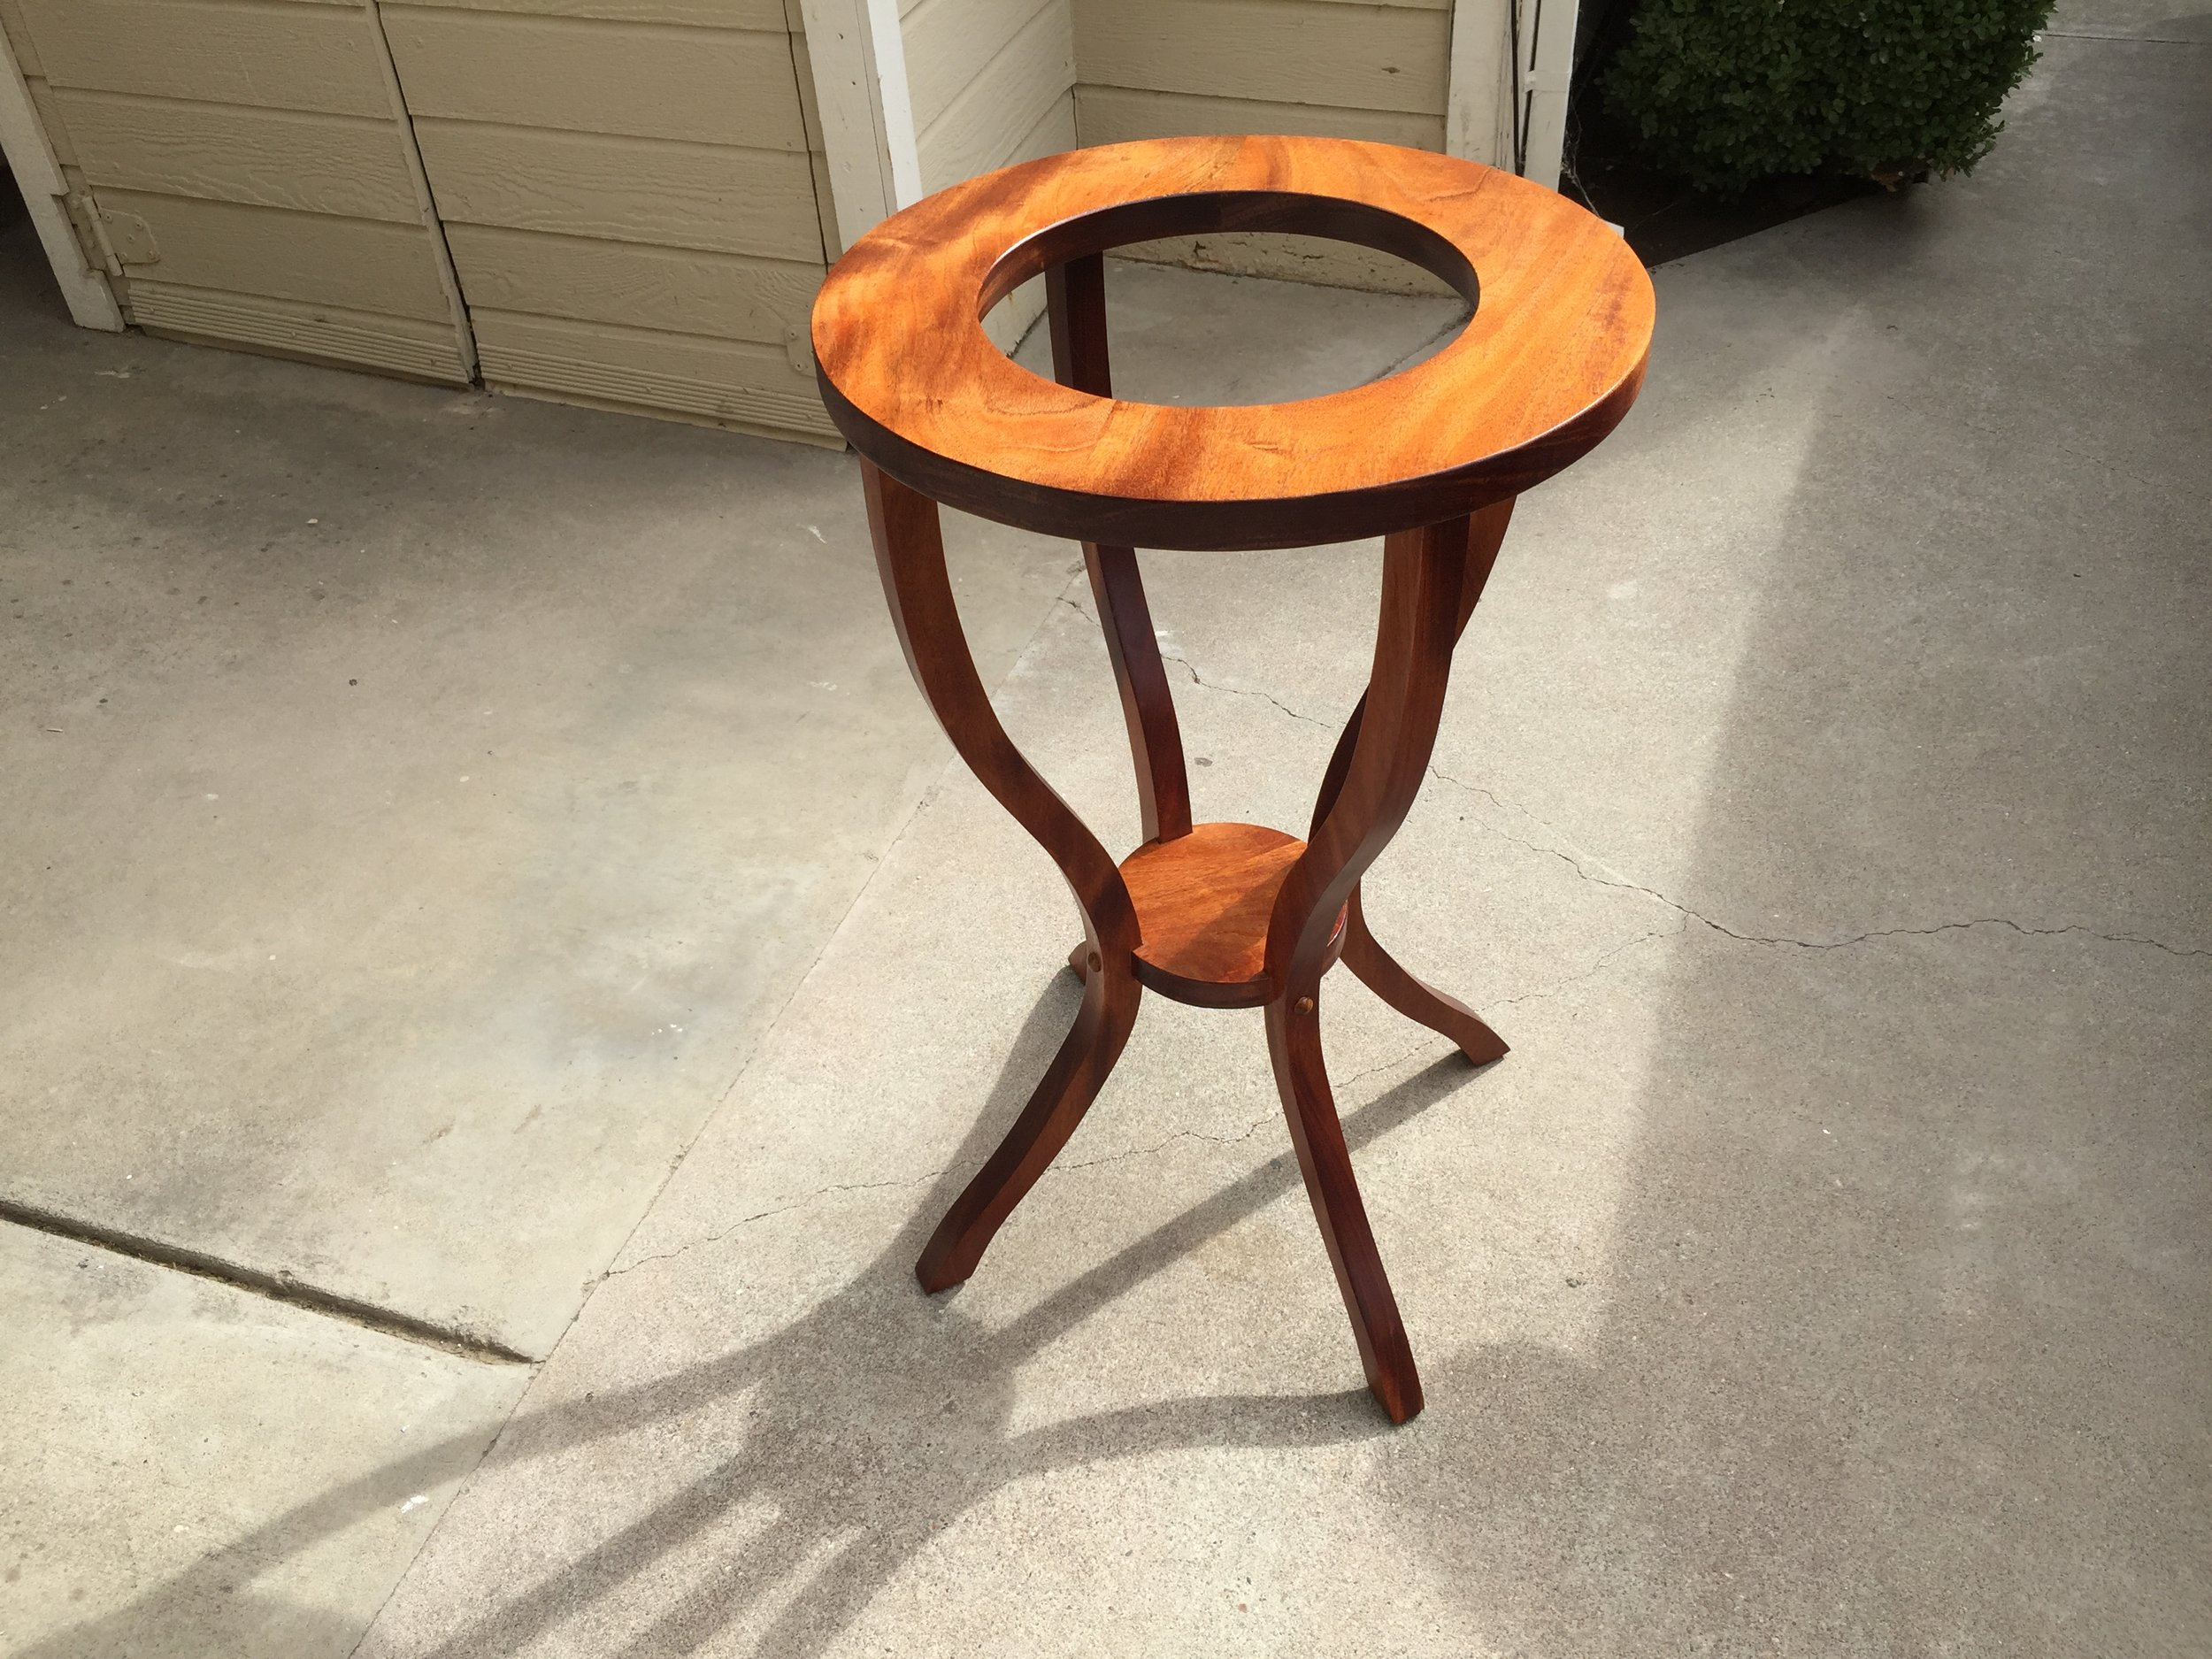 The sun brings out the original orangish color of the wood